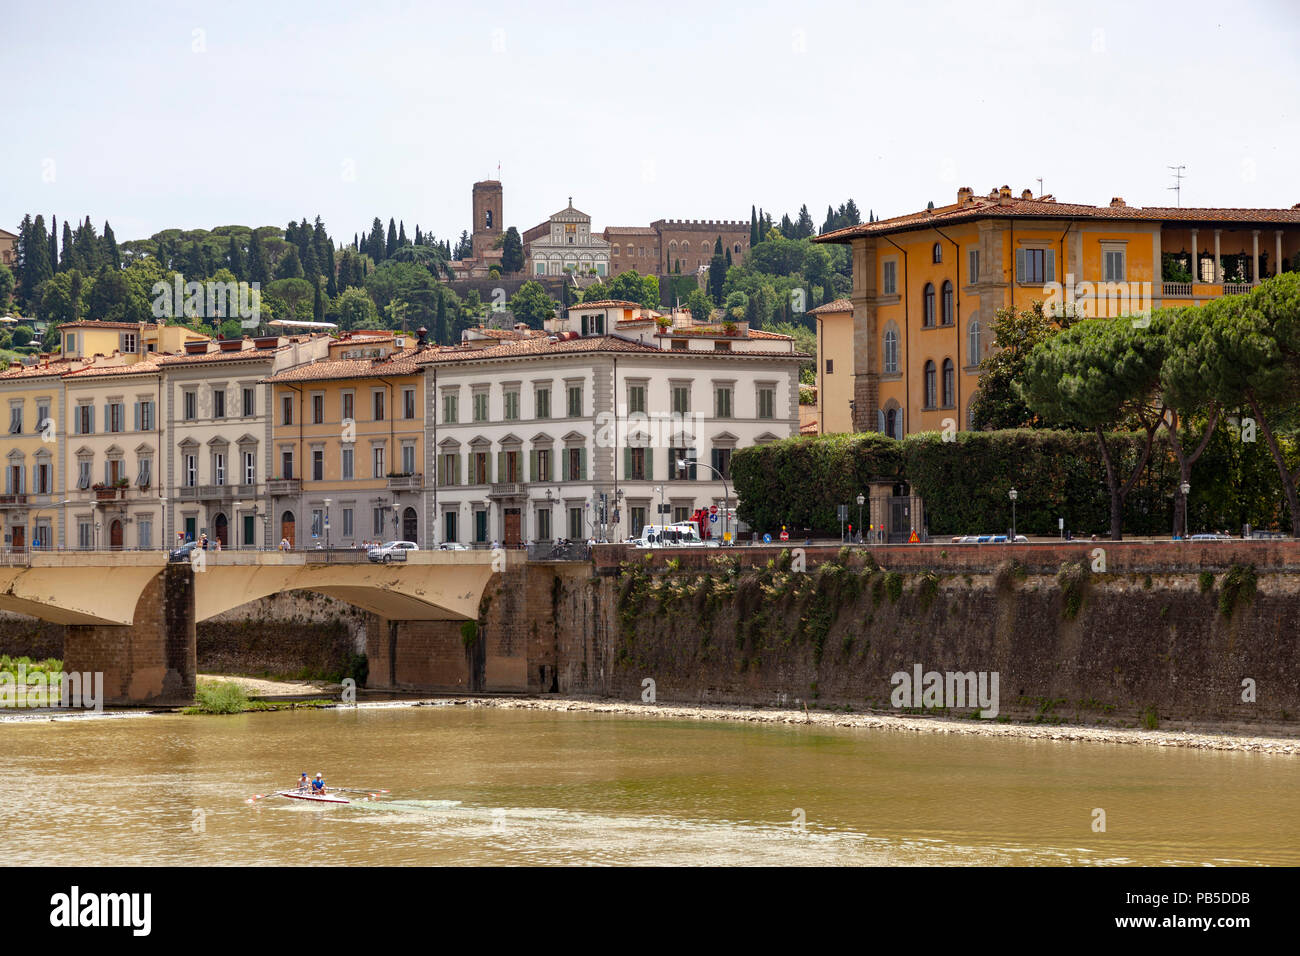 The left bank of the Arno river with in the background the San Miniato al Monte church built on one of the hills of Florence. La rive gauche de l'Arno Stock Photo